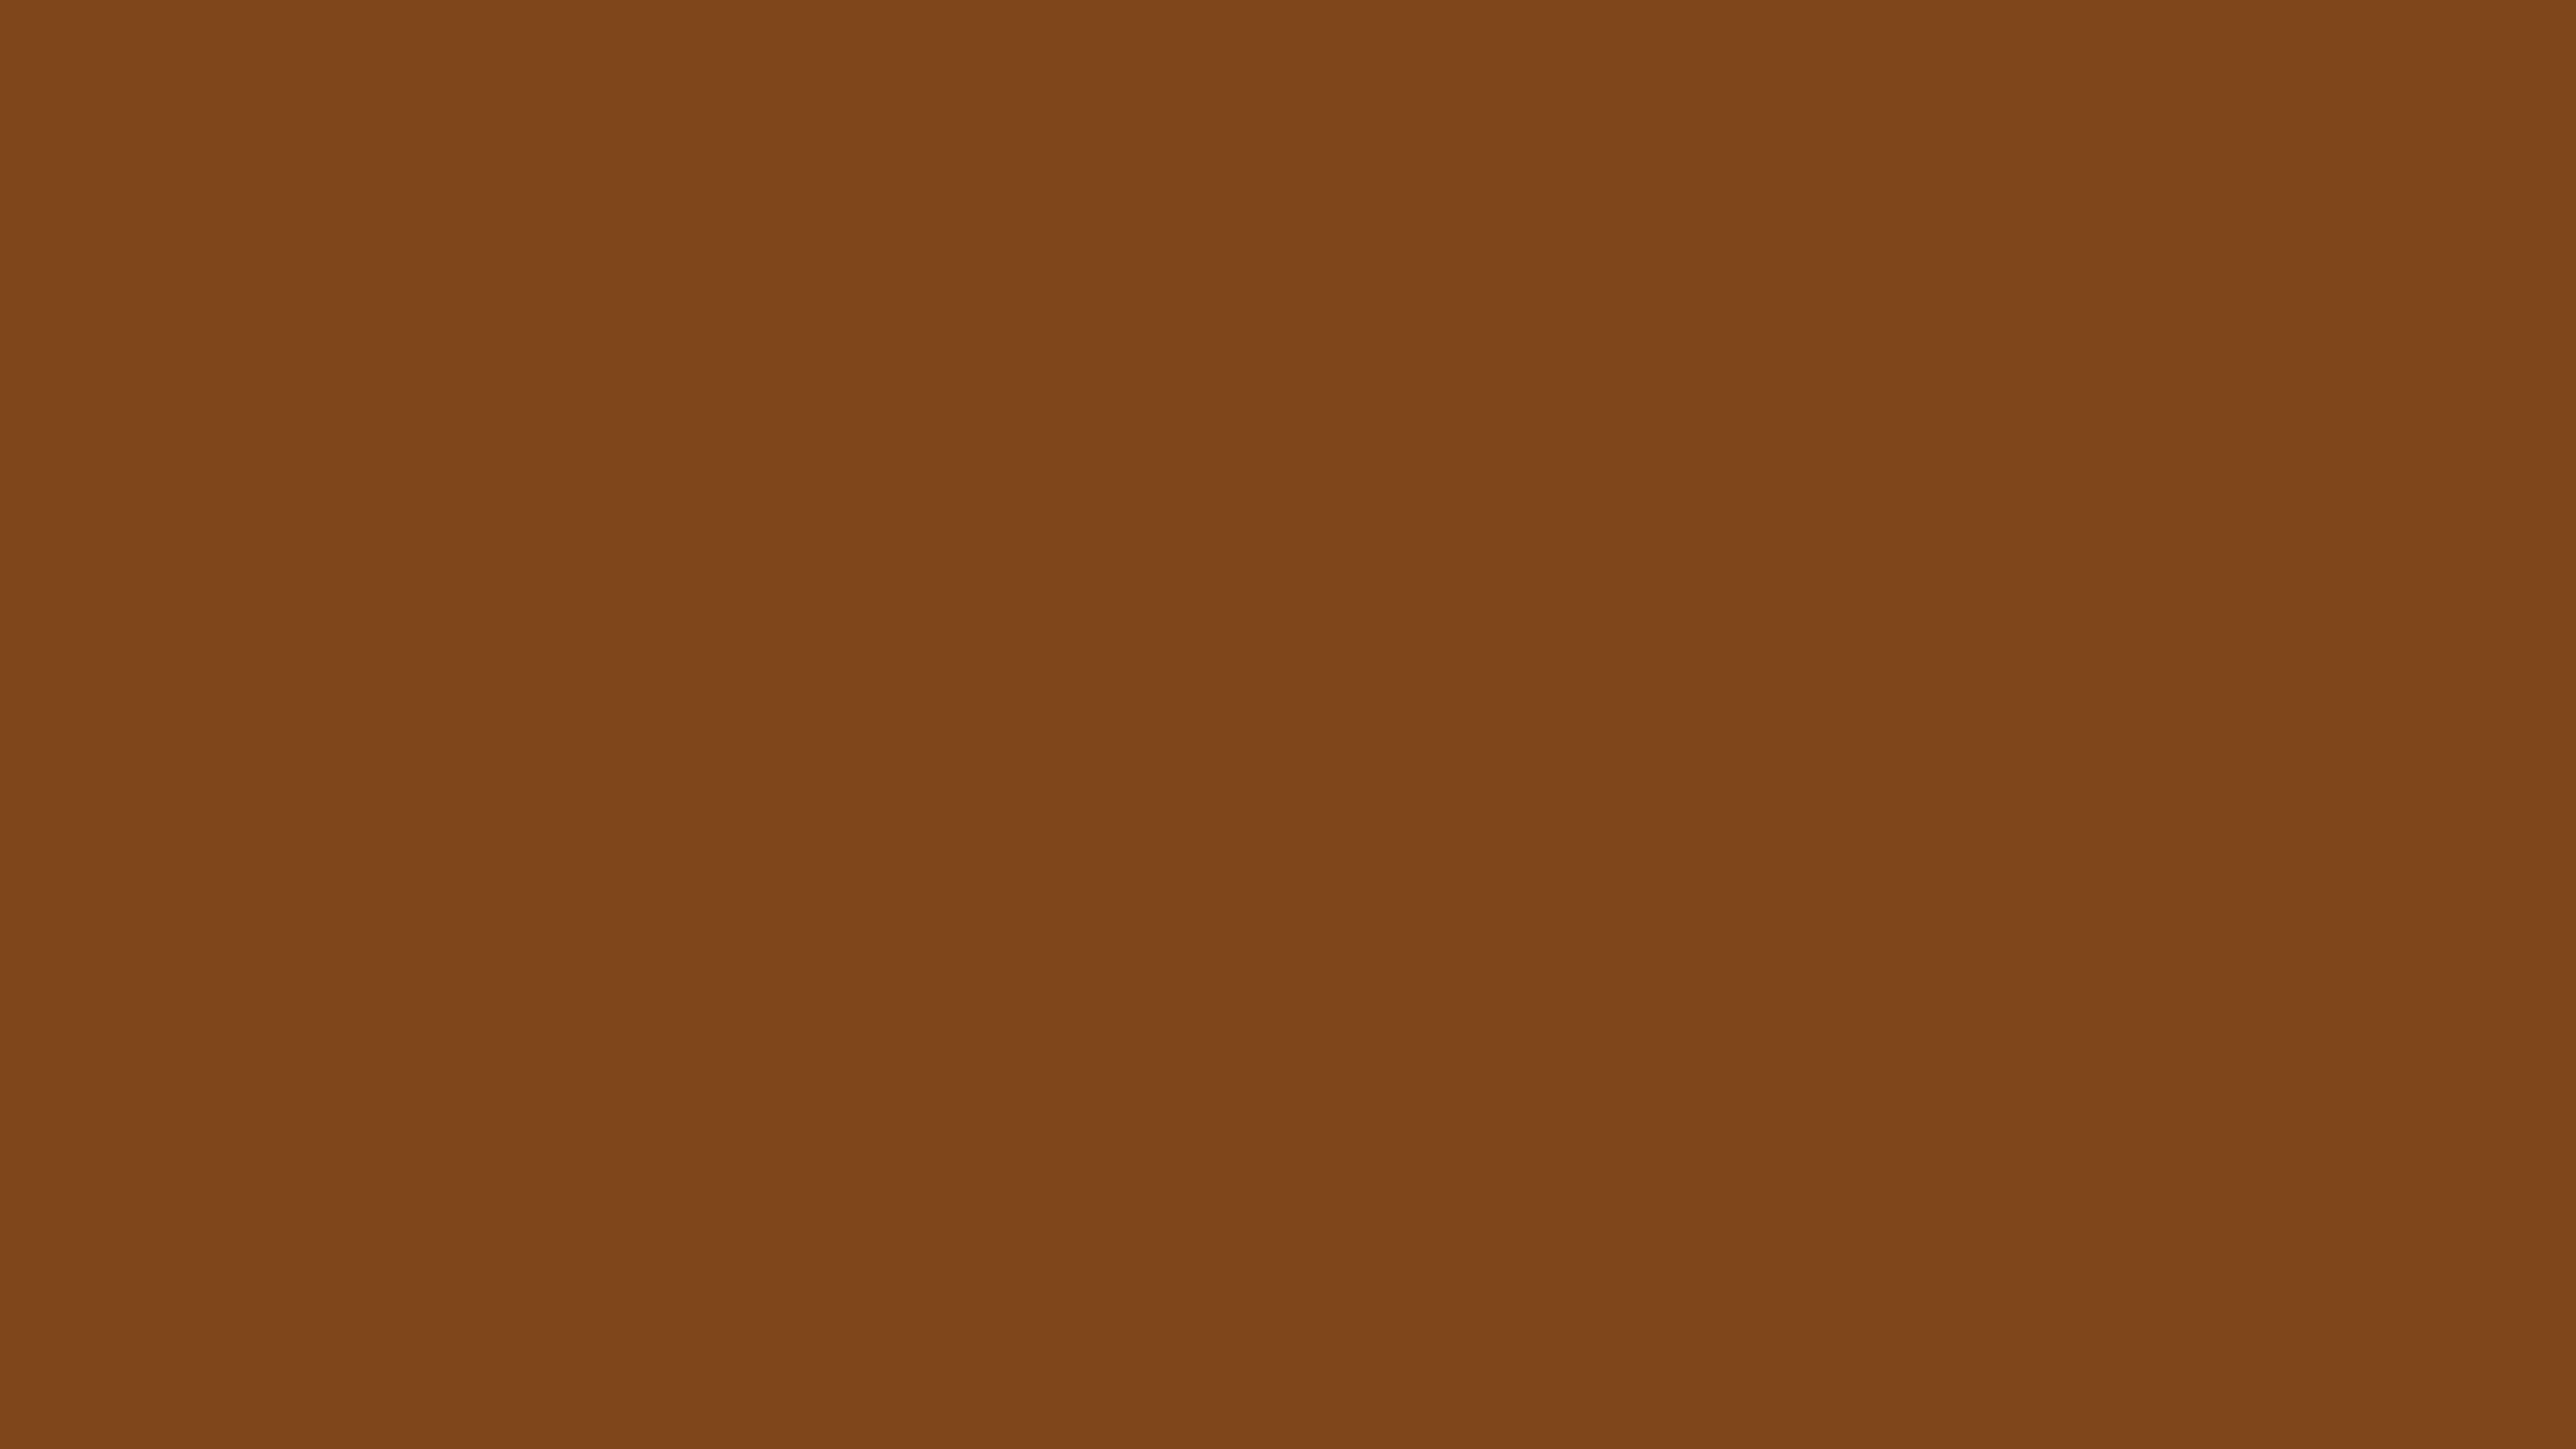 4096x2304 Russet Solid Color Background